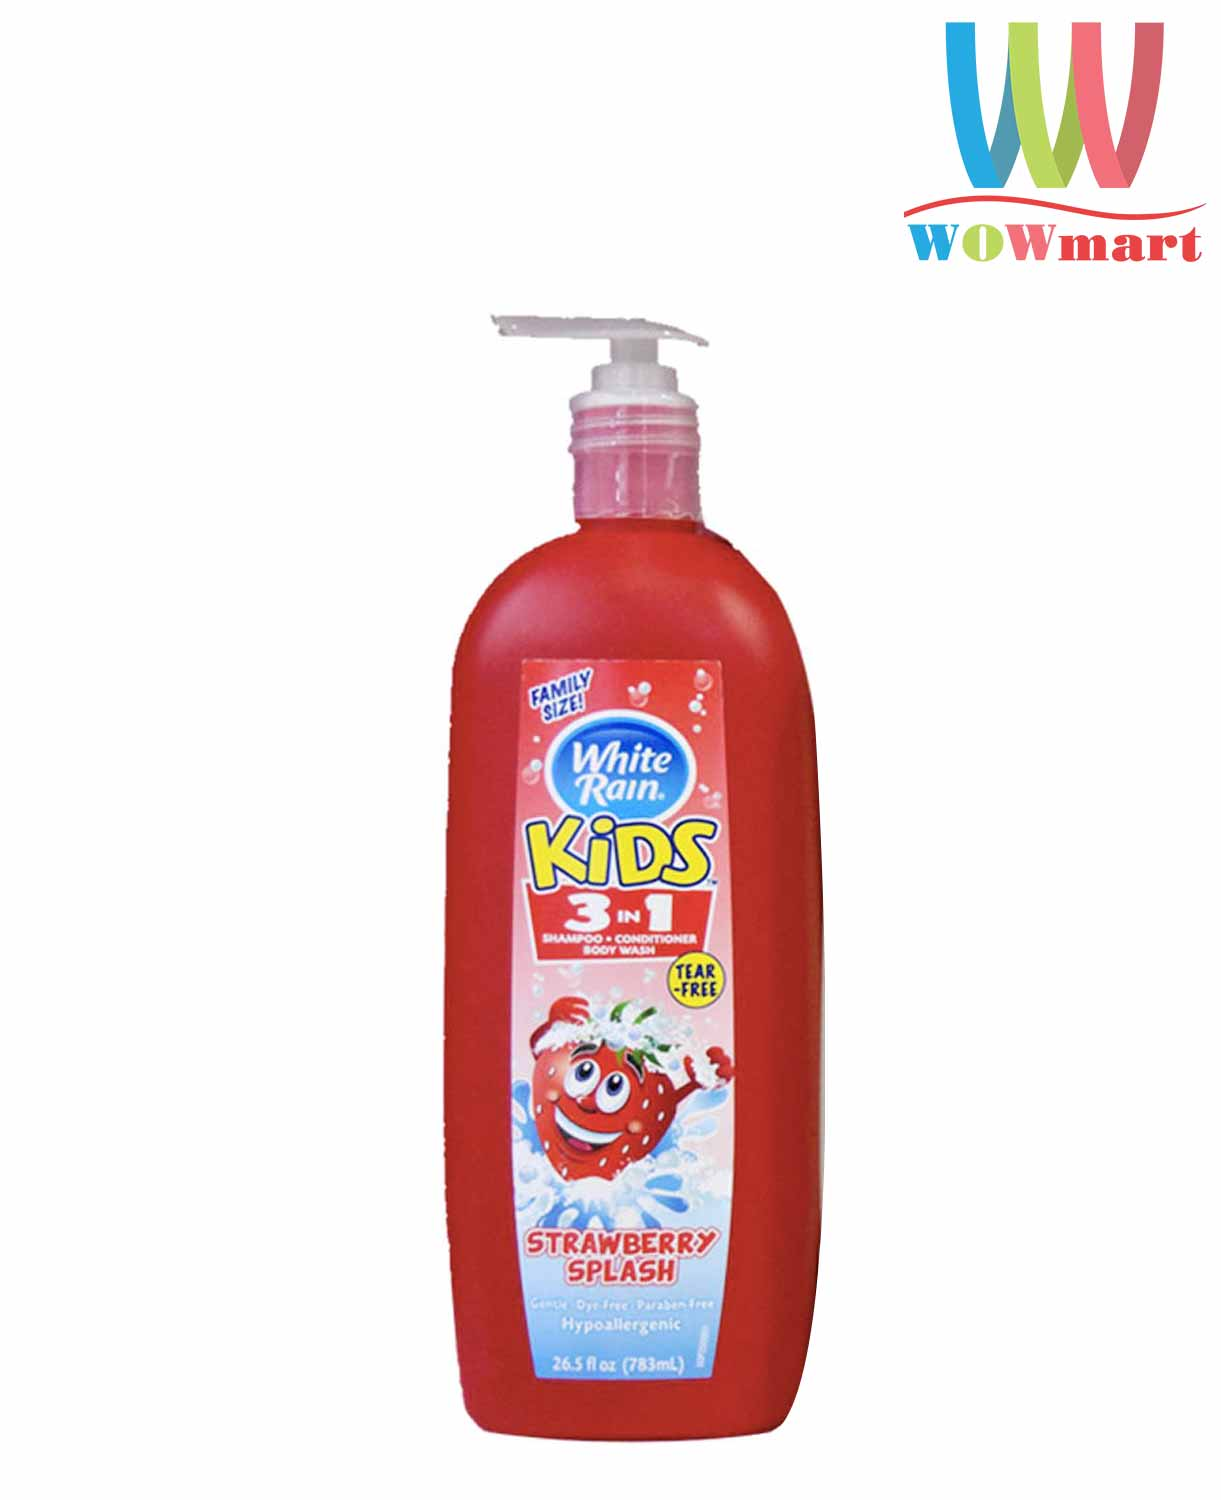 white-rain-kids-3-in-1-strawberry